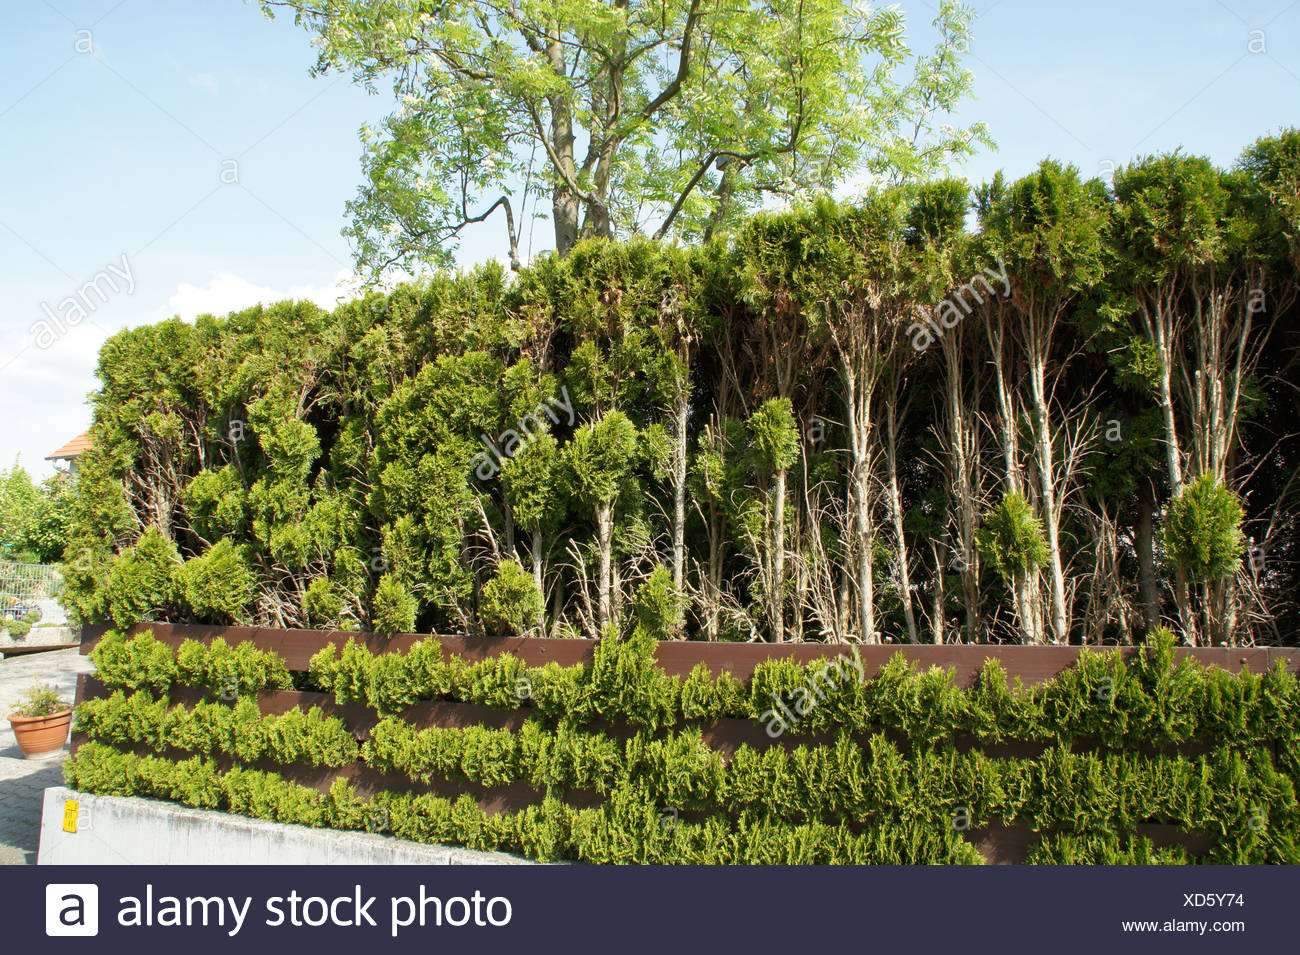 White Cedars, Hedge Stock Photo